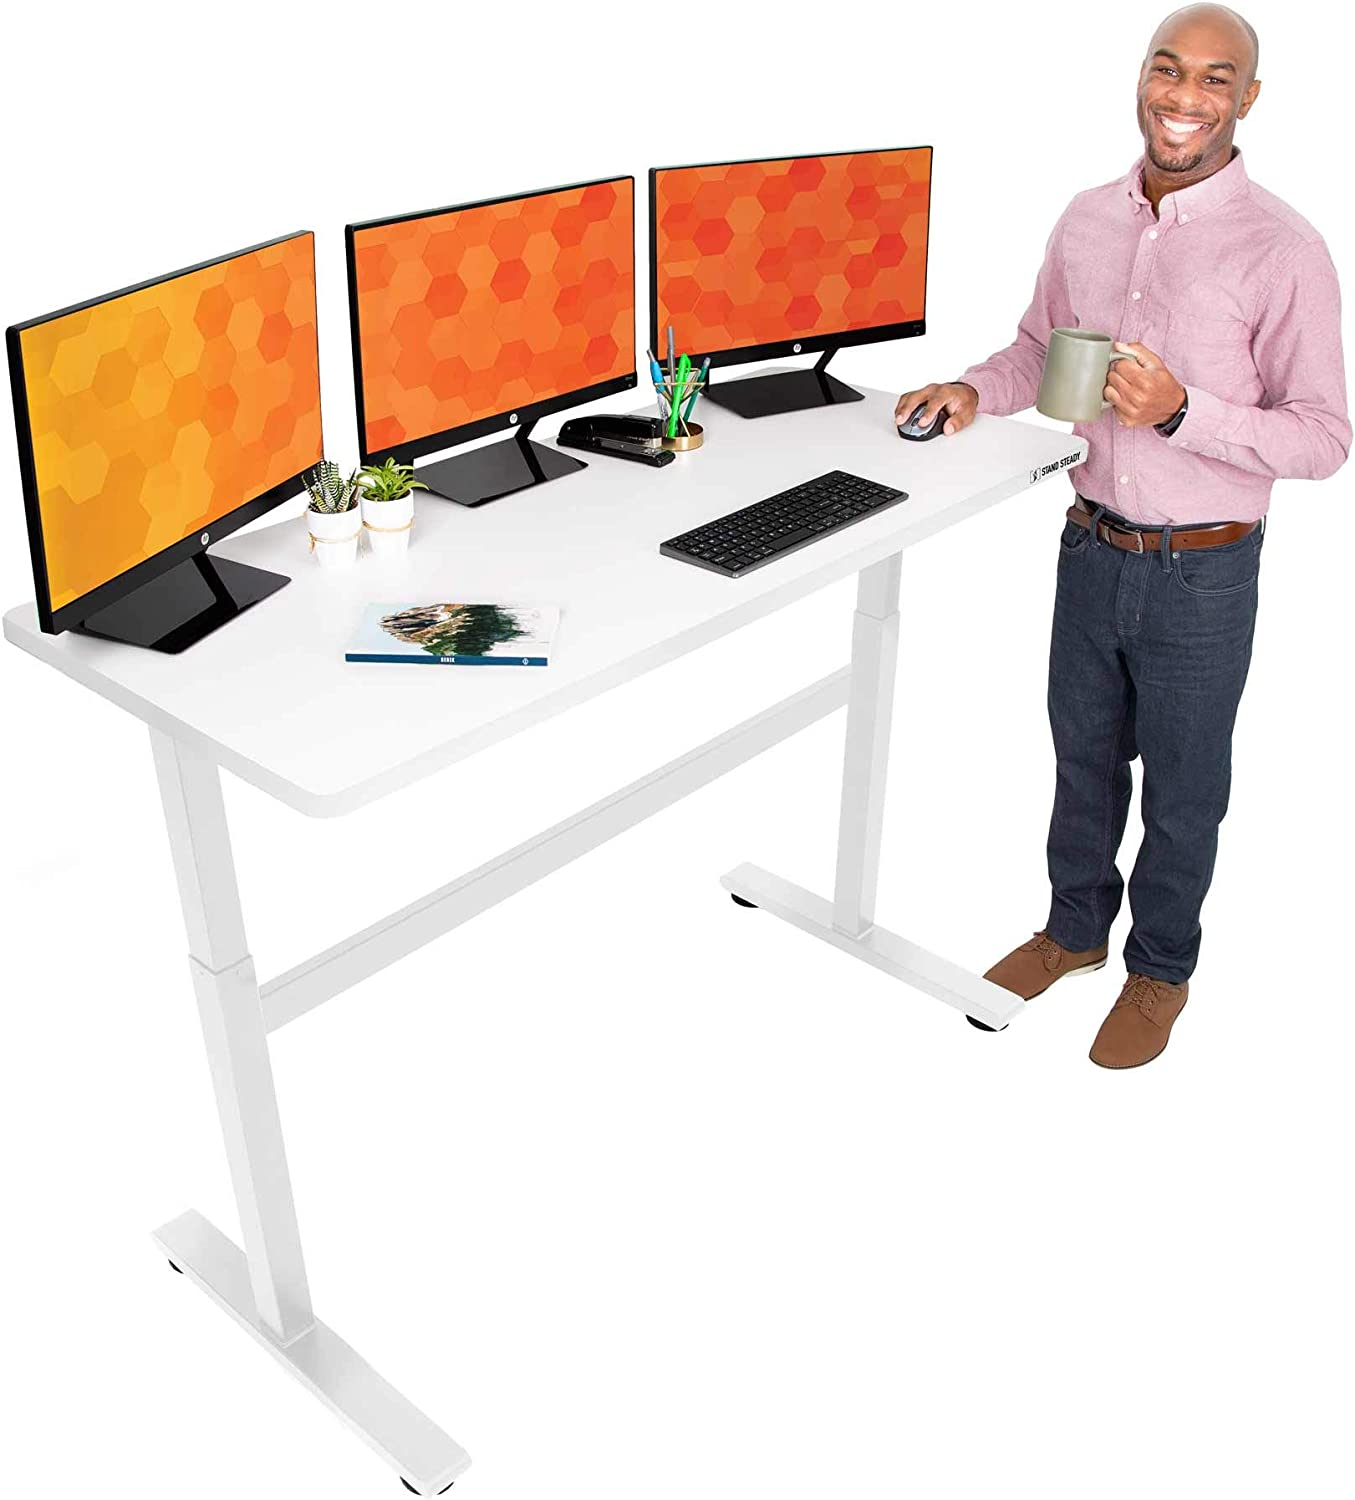 Stand Steady Tranzendesk 55 Inch Standing Desk | Easy Crank Height Adjustable Sit to Stand Workstation | Modern Ergonomic Desk Supports 3 Monitors | Perfect for Home & Office! (55